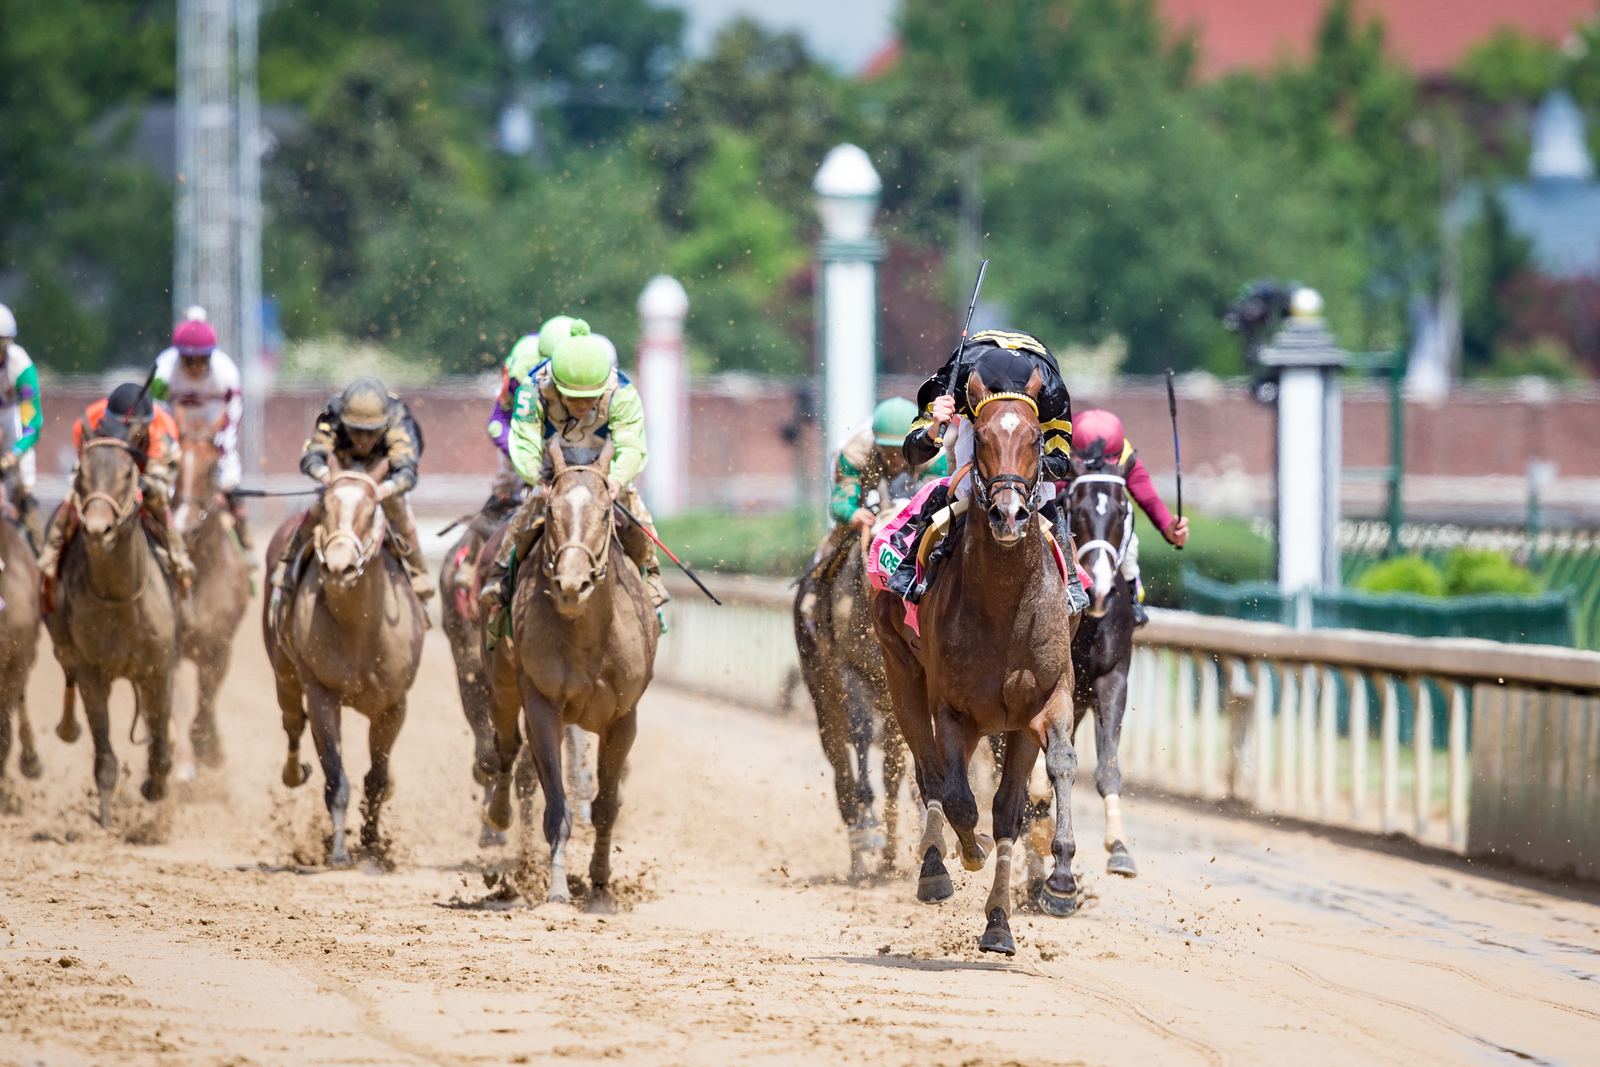 Wild Shot (Trappe Shot) wins the Pat Day Mile (G3) at Churchill Downs on 5.6.2017. Corey Lanerie up, George Arnold trainer, Calumet Farm owner.